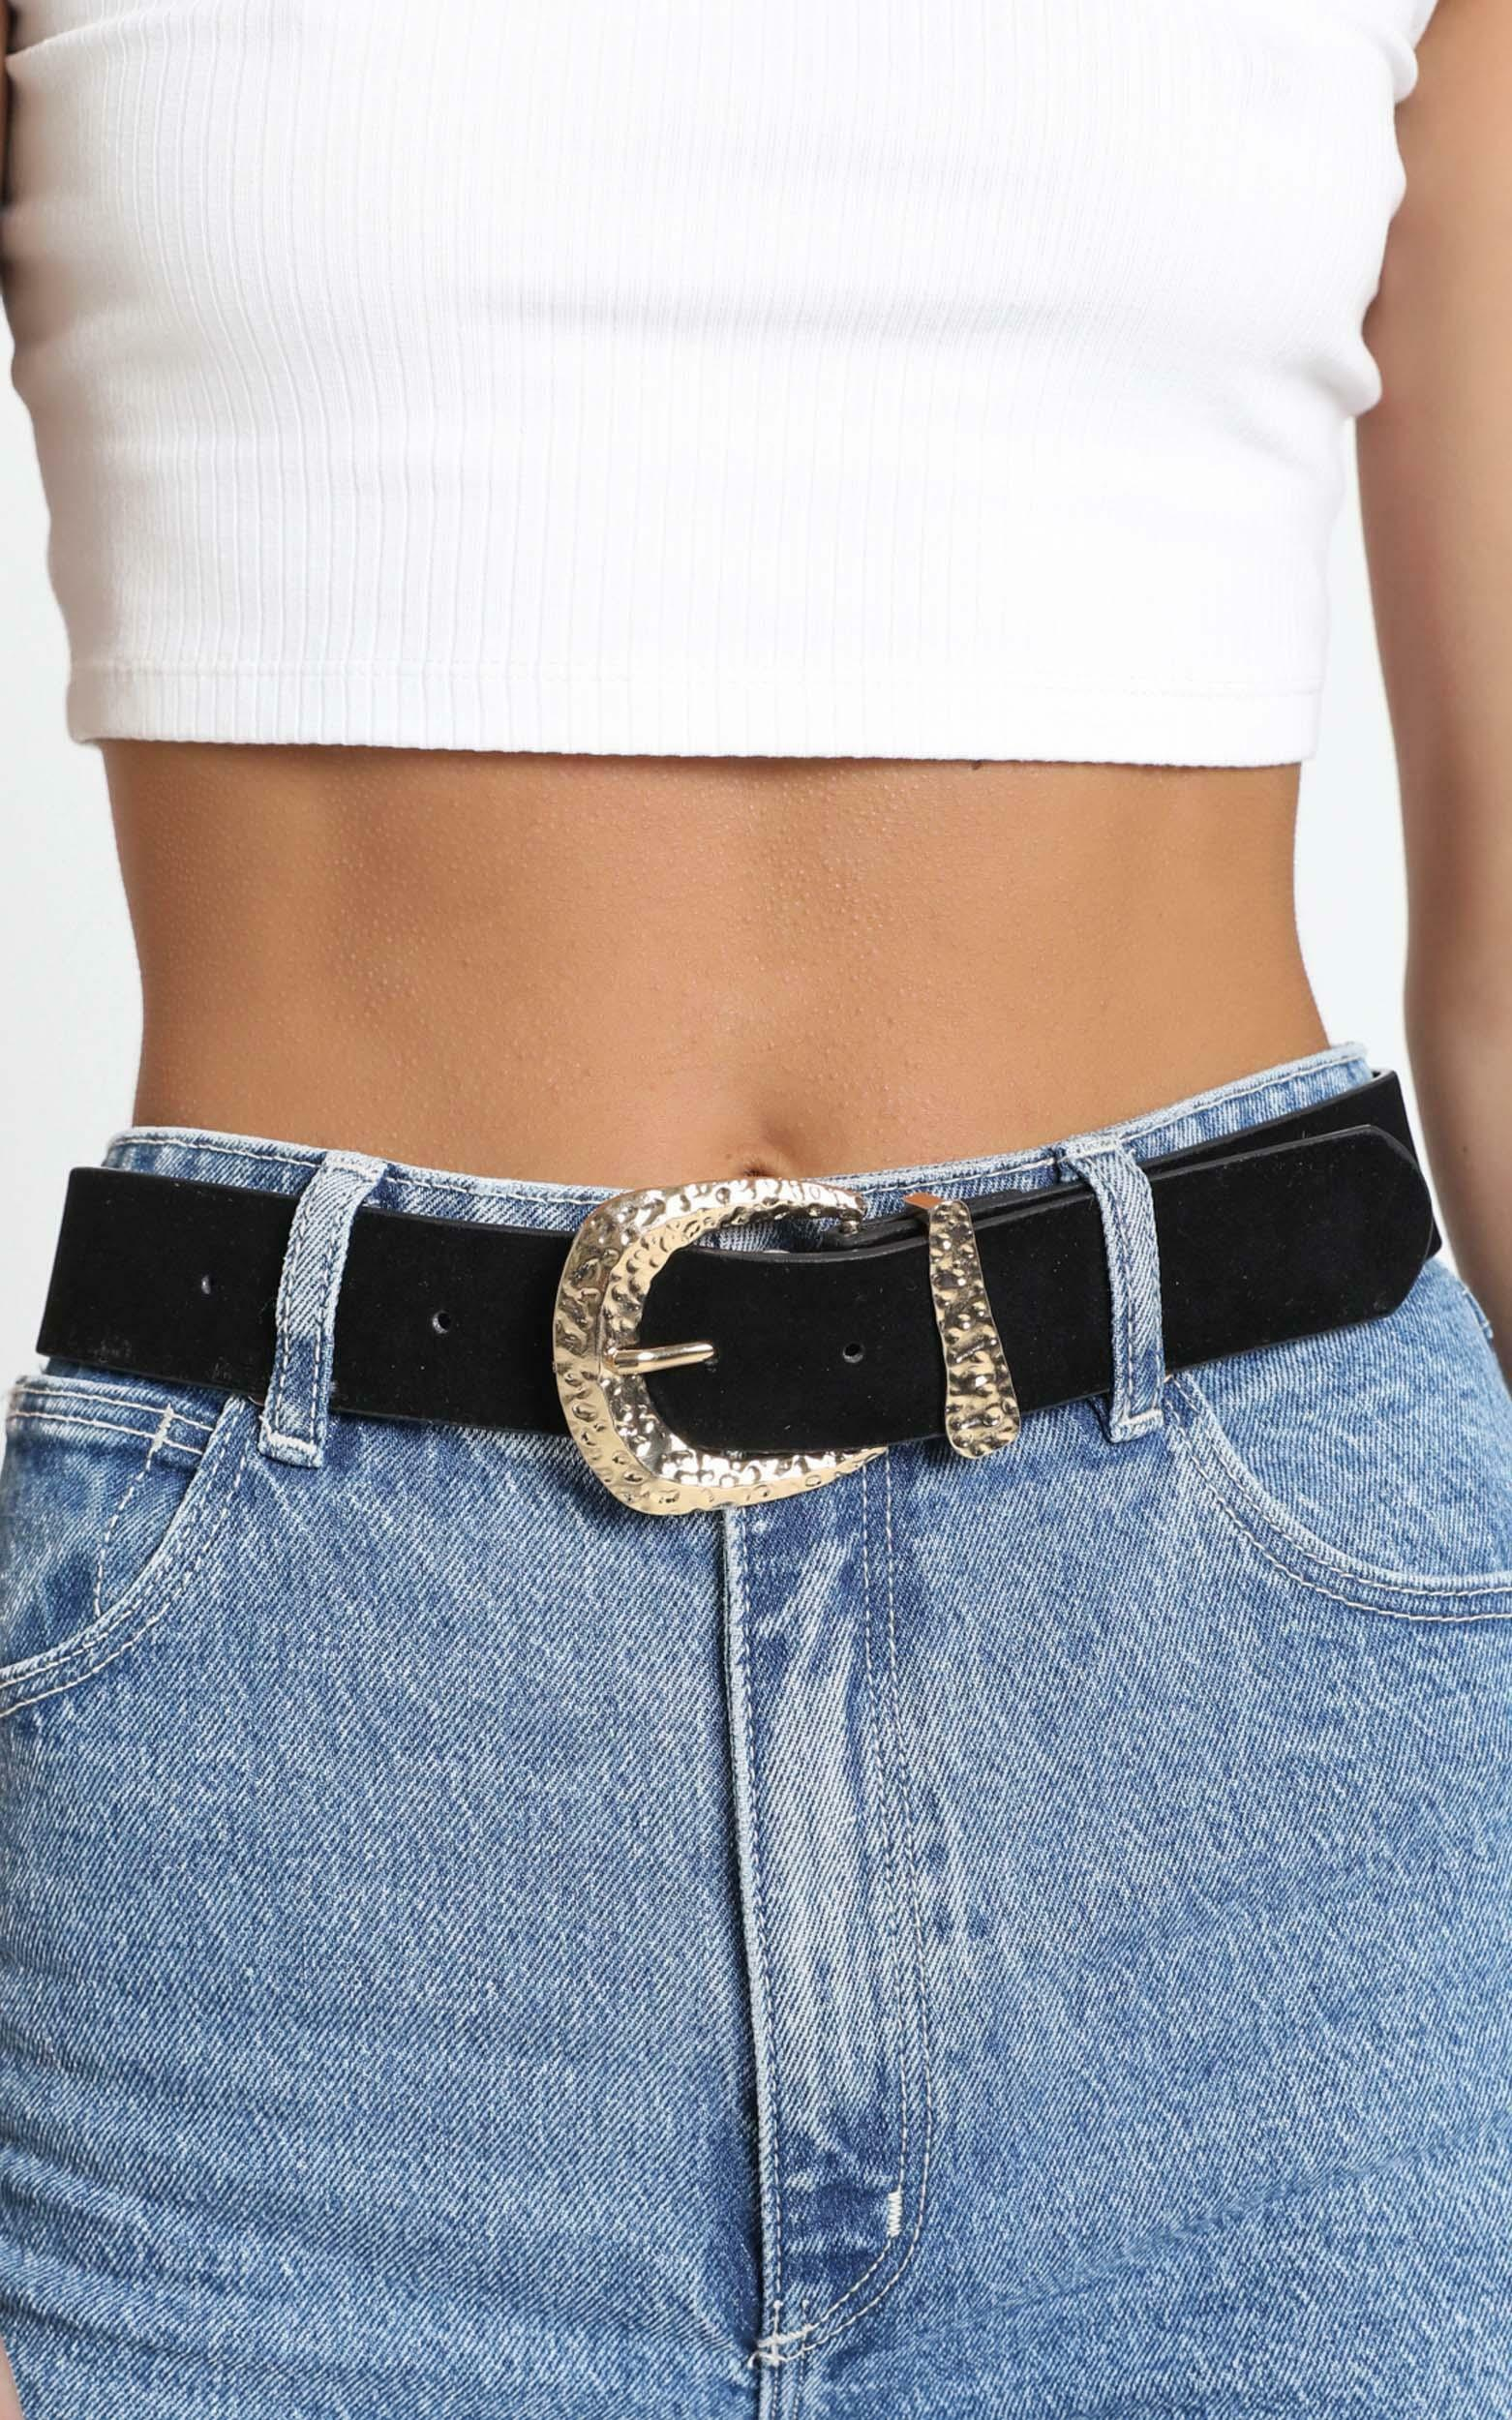 Elecktra Belt in Black and Gold, , hi-res image number null